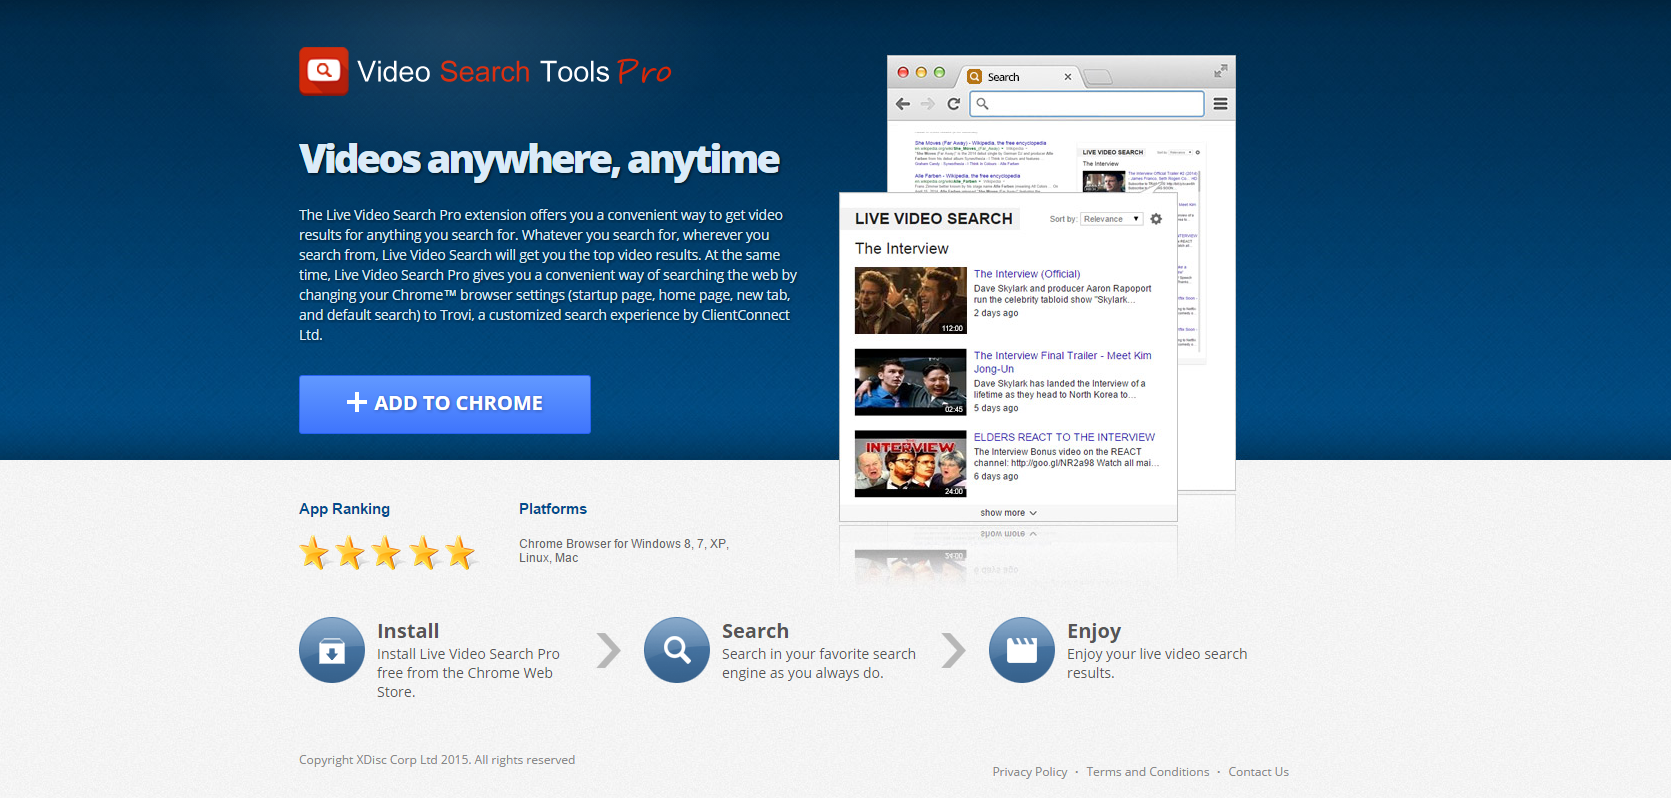 Video Search Tools Pro ads